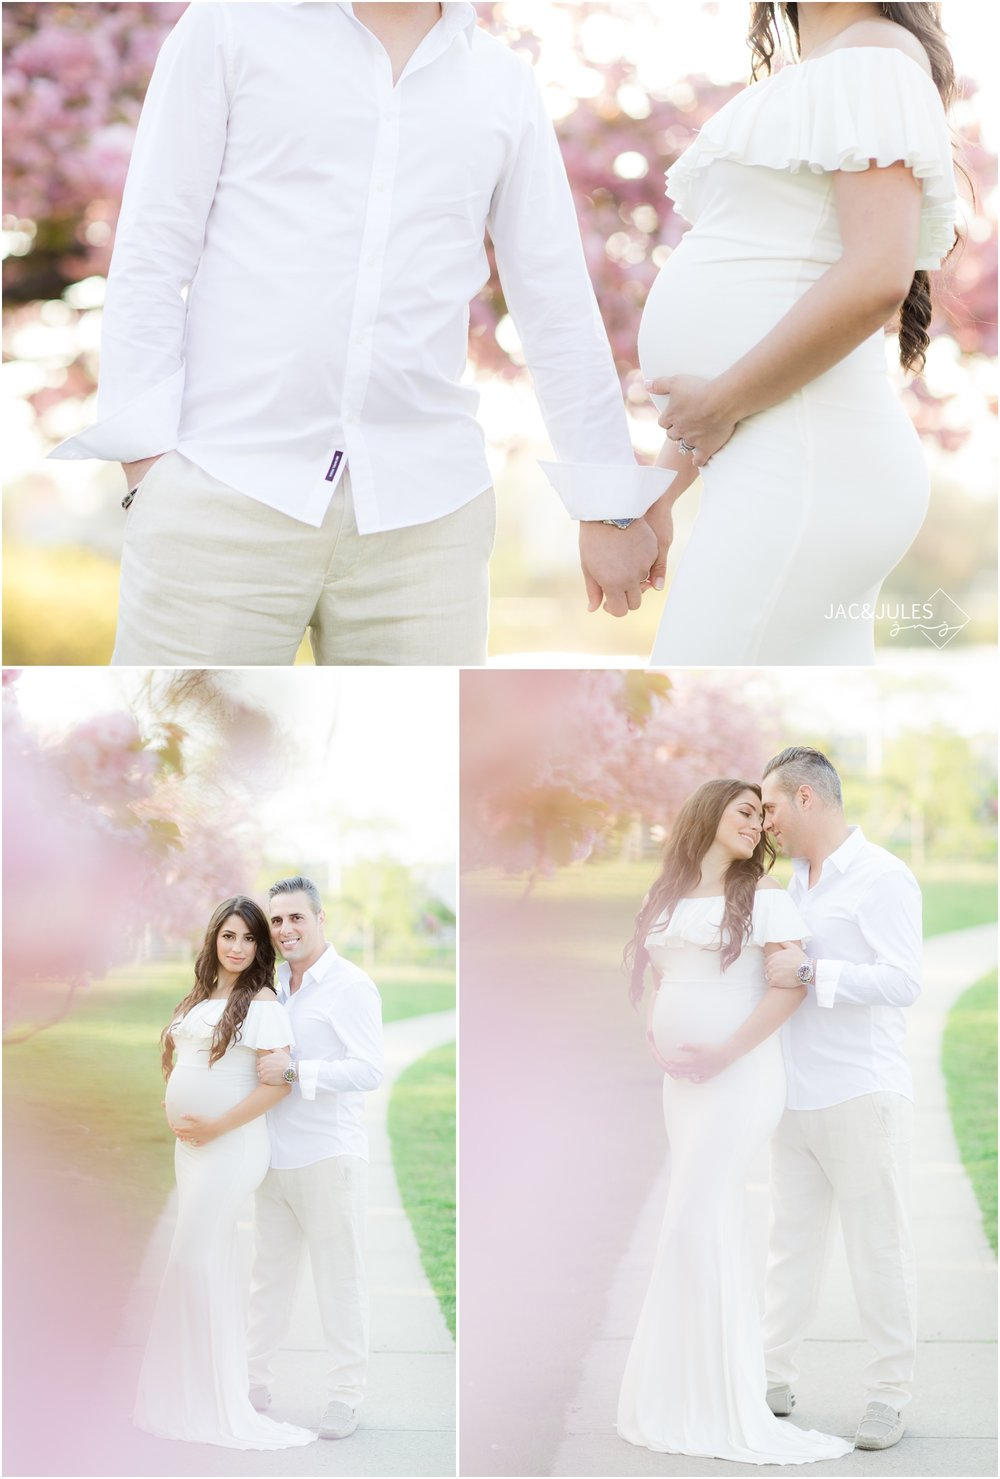 whimsical maternity photos with cherry blossoms at Divine Park in Spring Lake, NJ.